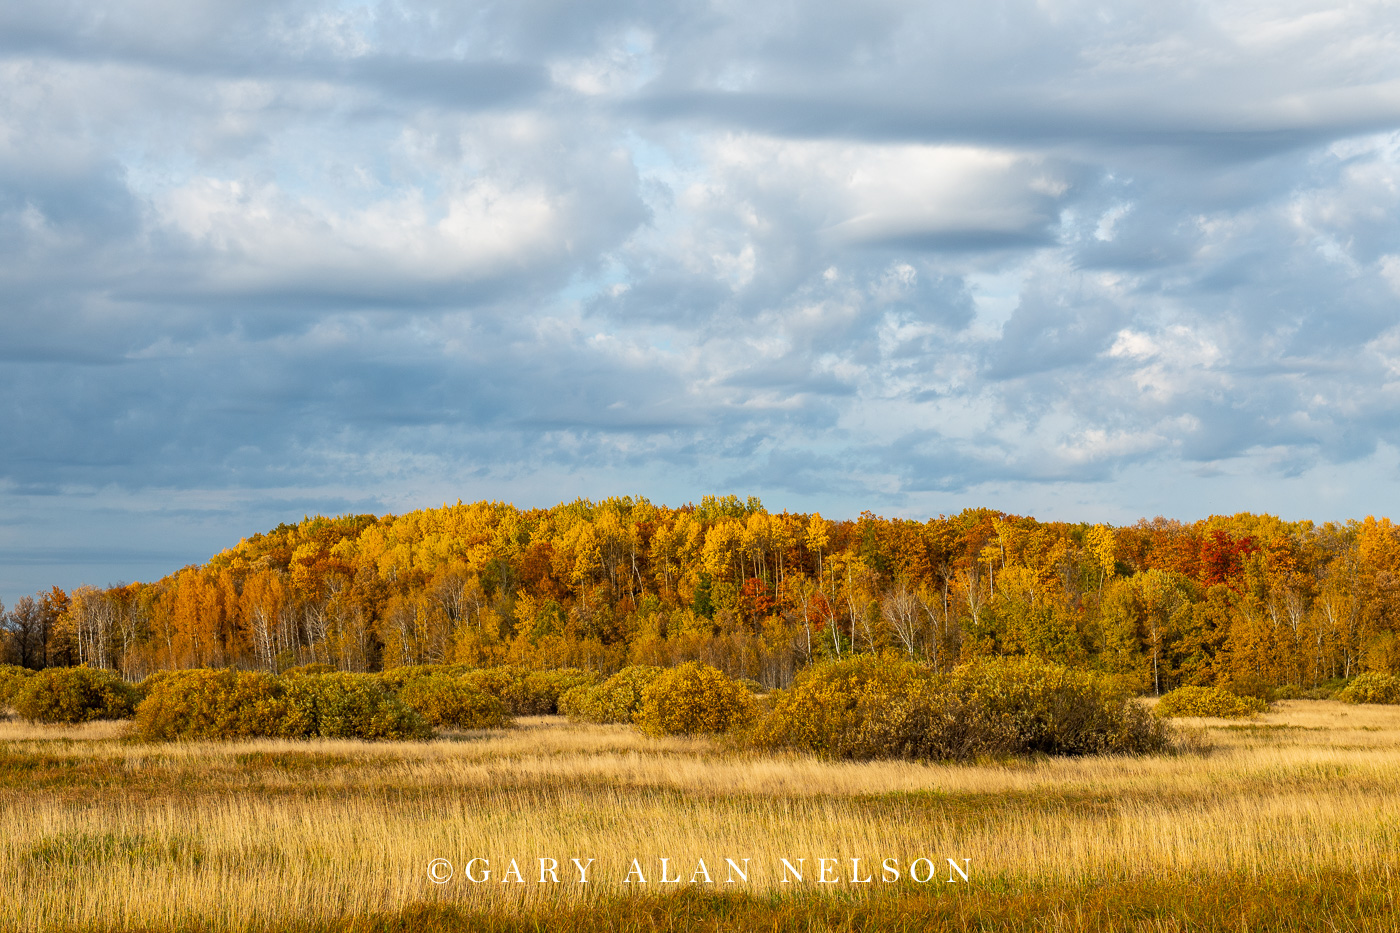 Autumn colors in Golden Anniversary State Forest, Minnesota